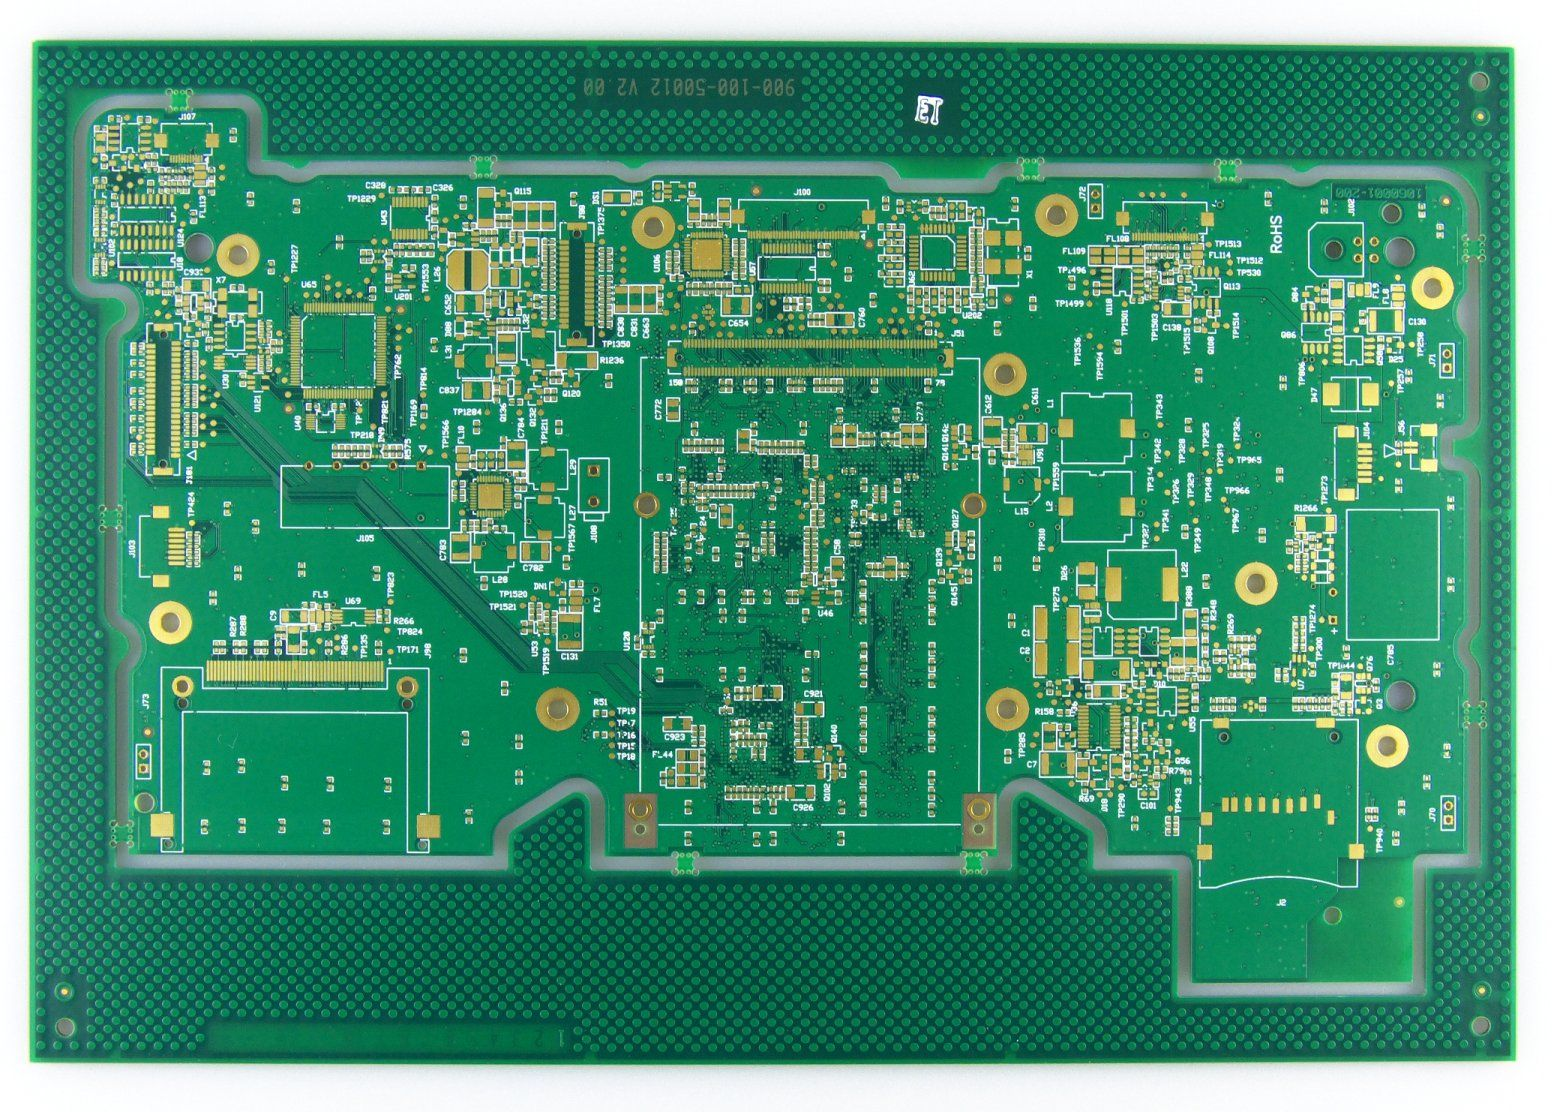 Proceeding To Discuss Achievement You Additionally Need Ensure Circuit Board Maker Buy Pcb Boardprinted Boardpcb Pick The Multilayer Manufacture Organization With A Demonstrated Reputation